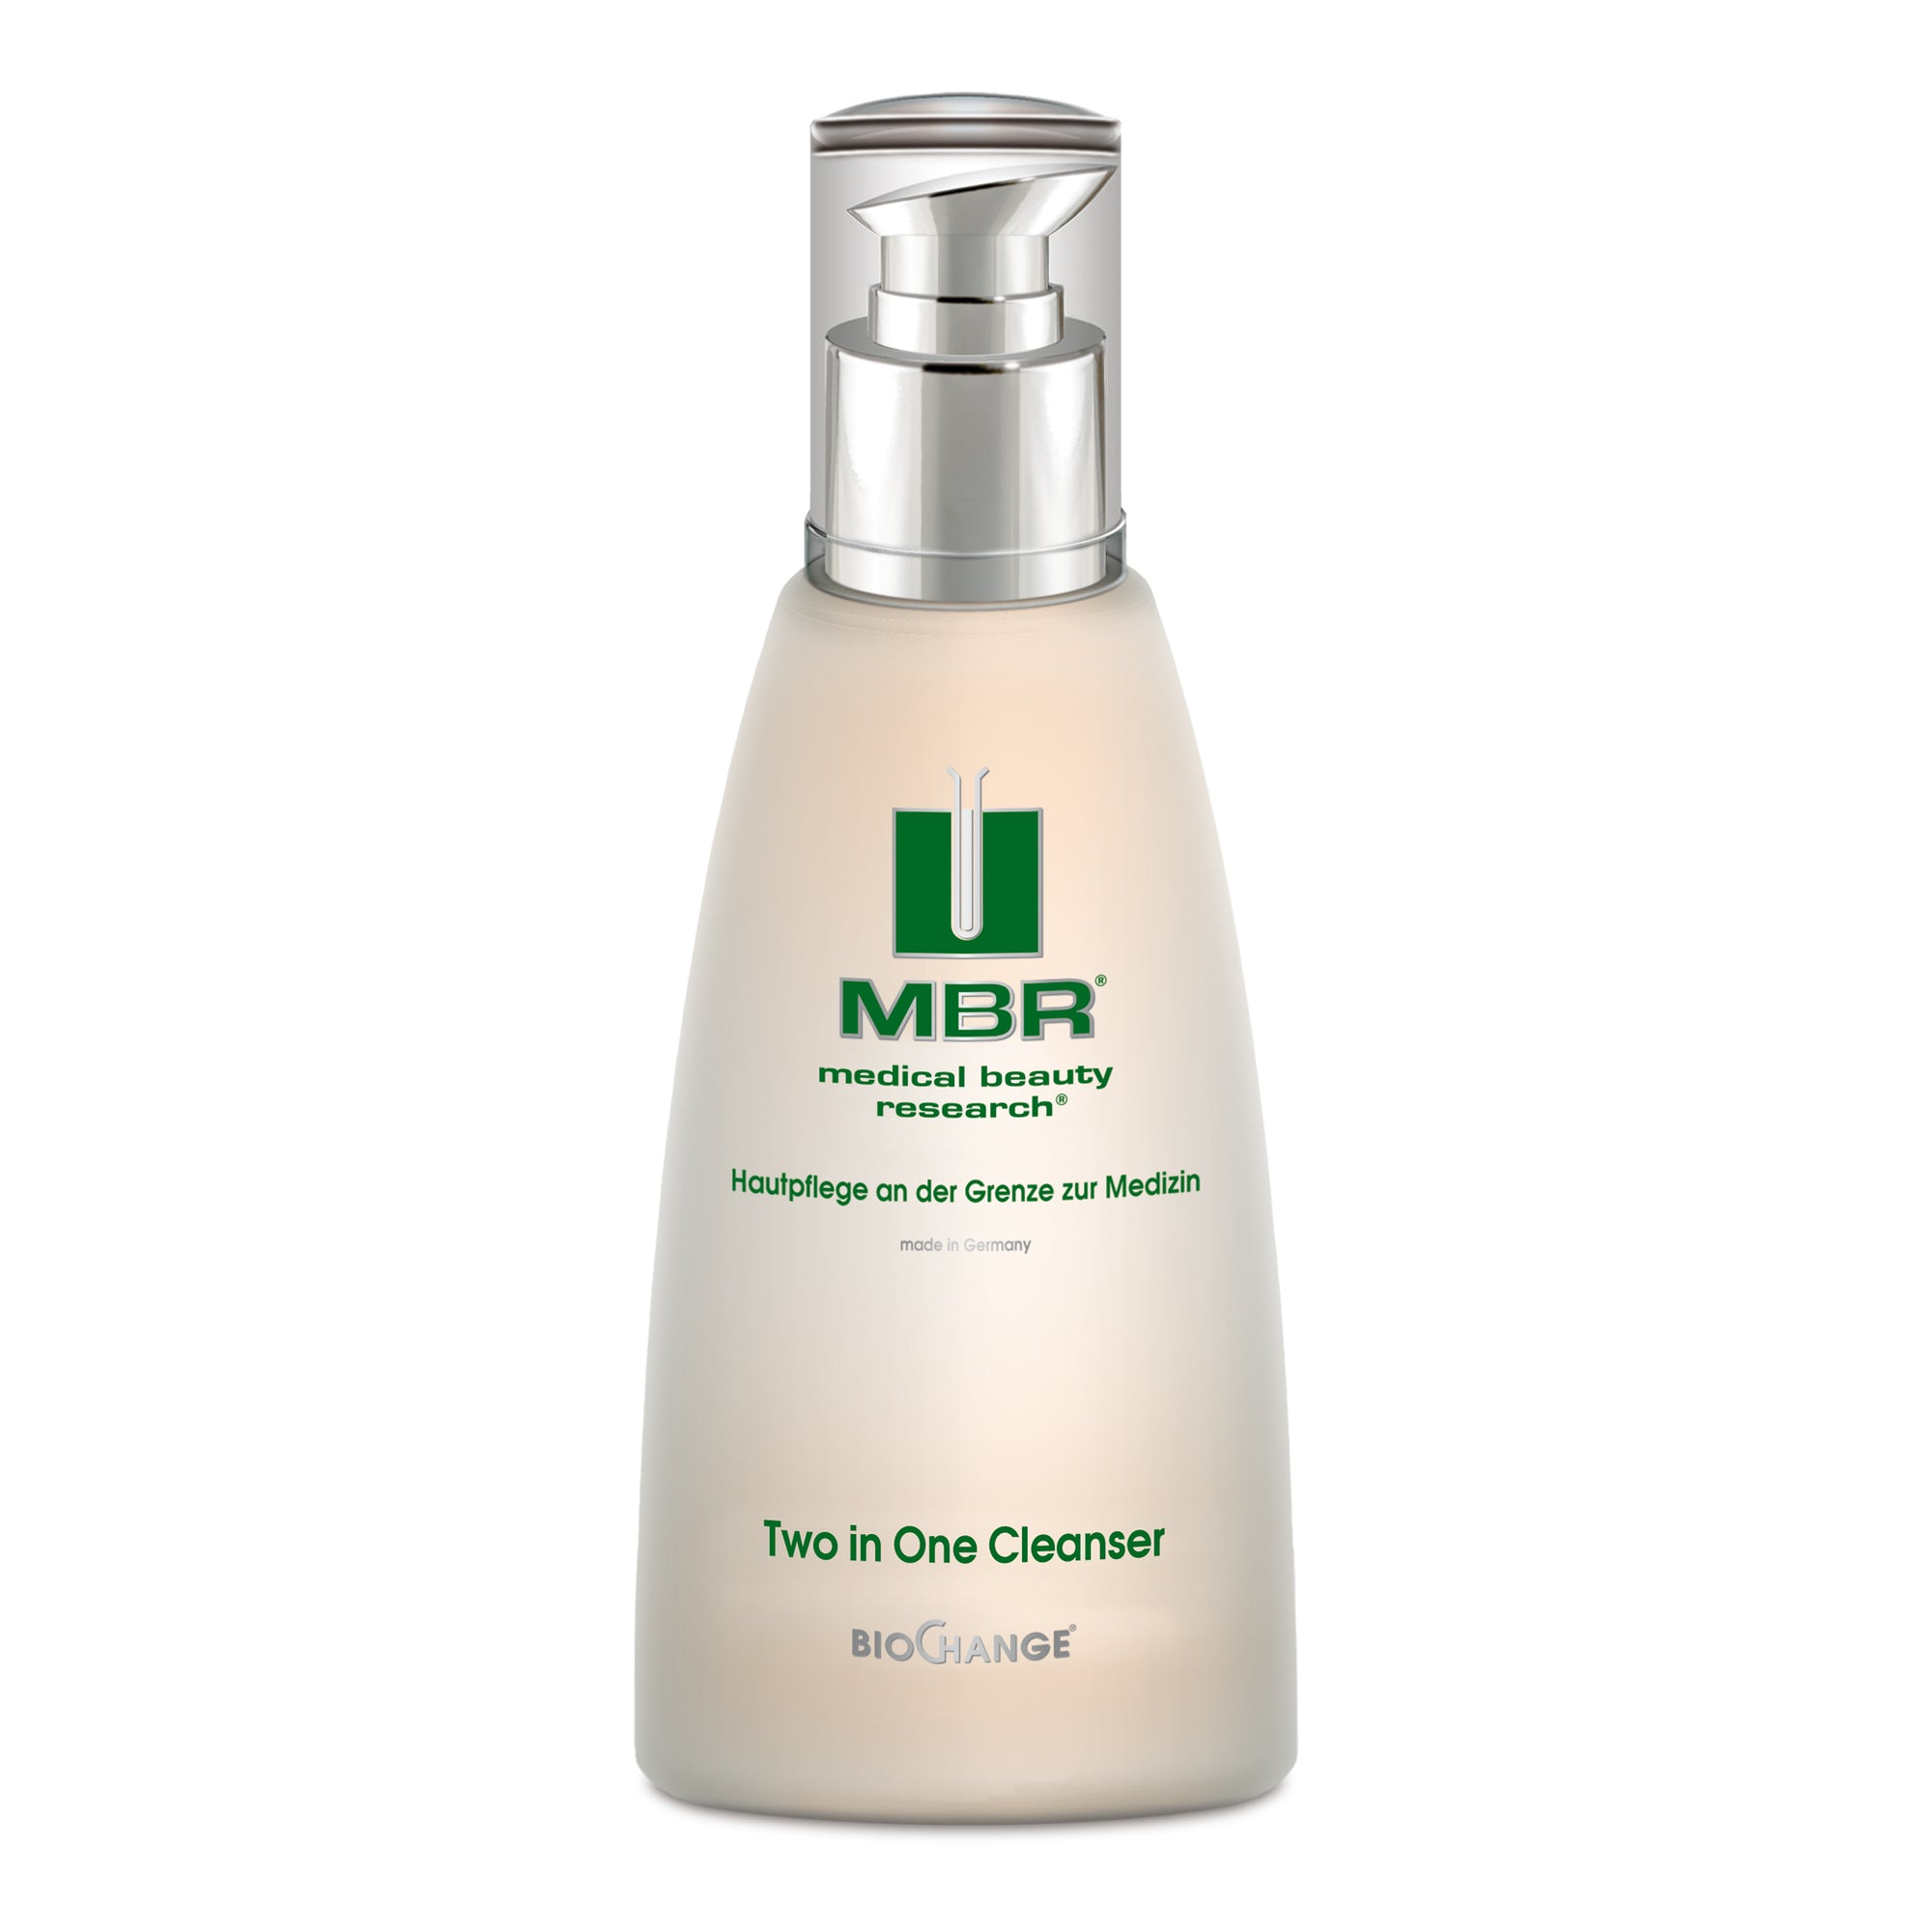 Two in One Cleanser 6.8 OZ - MBR